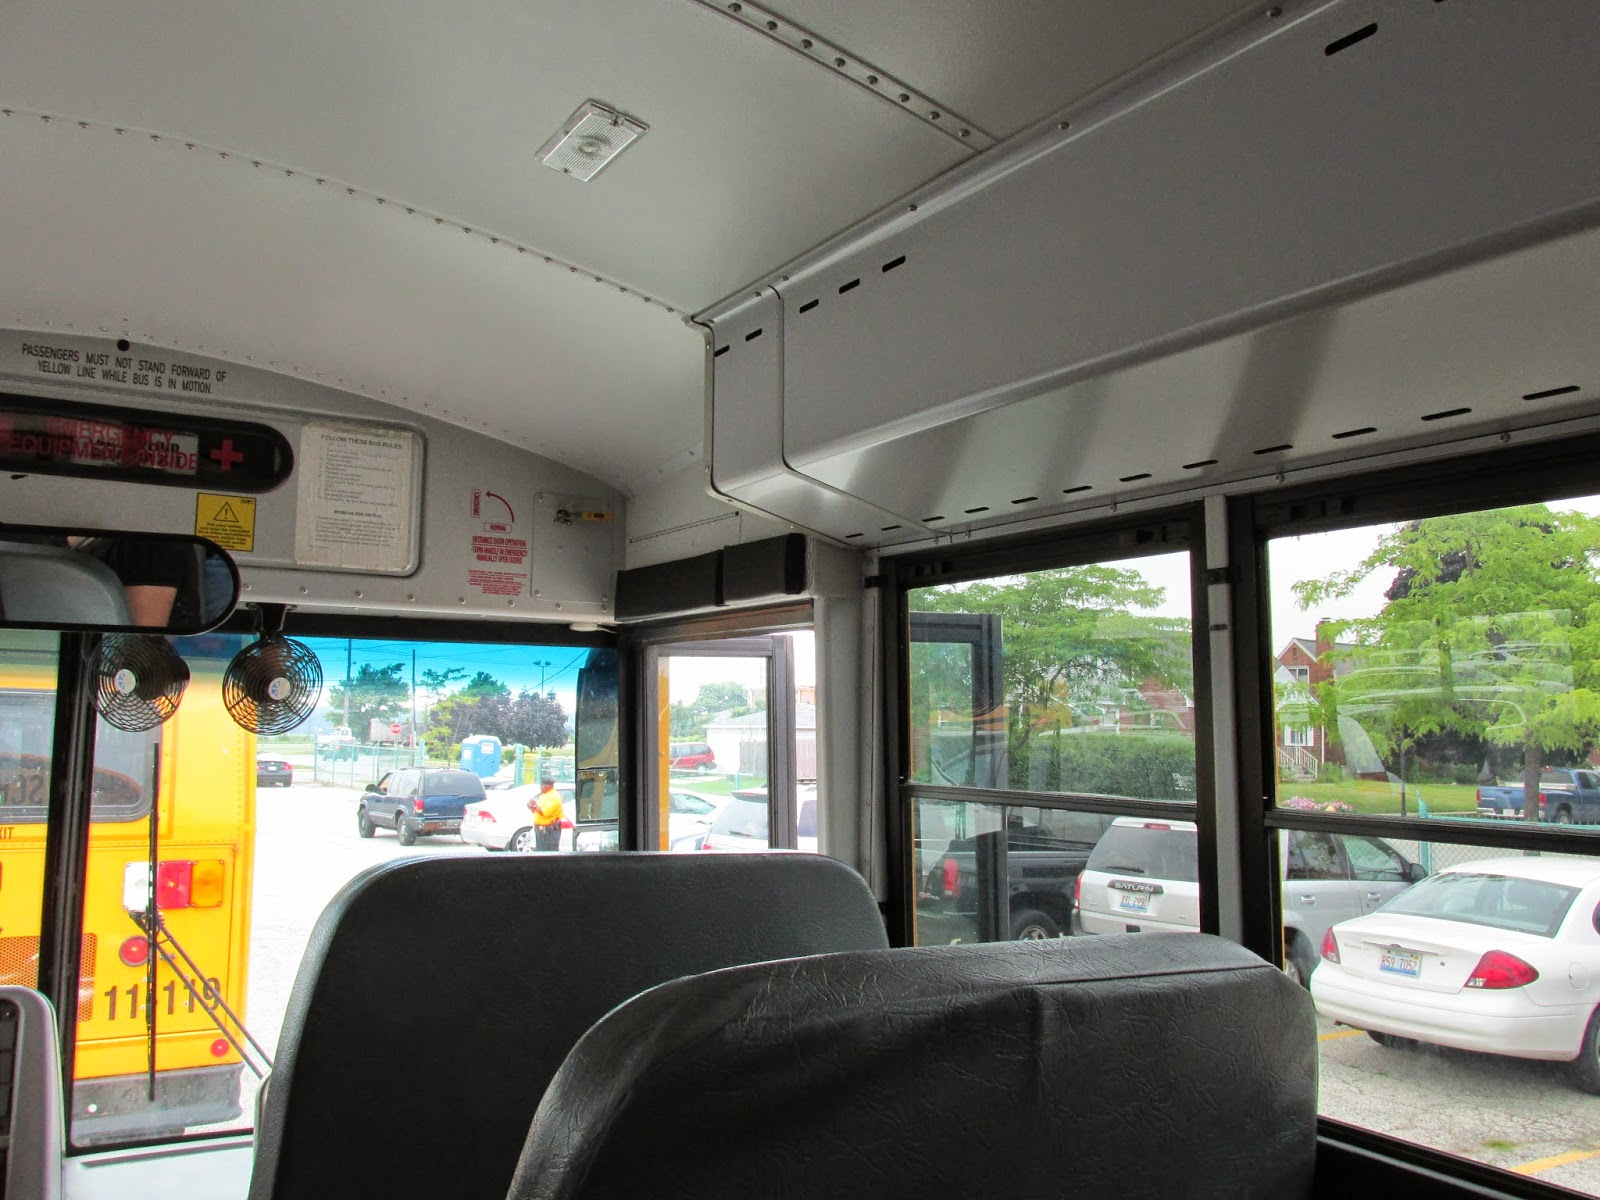 Interior Photograph Taken Inside A Modern Thomas Built School Bus. Whiting  Indiana. July 2014.